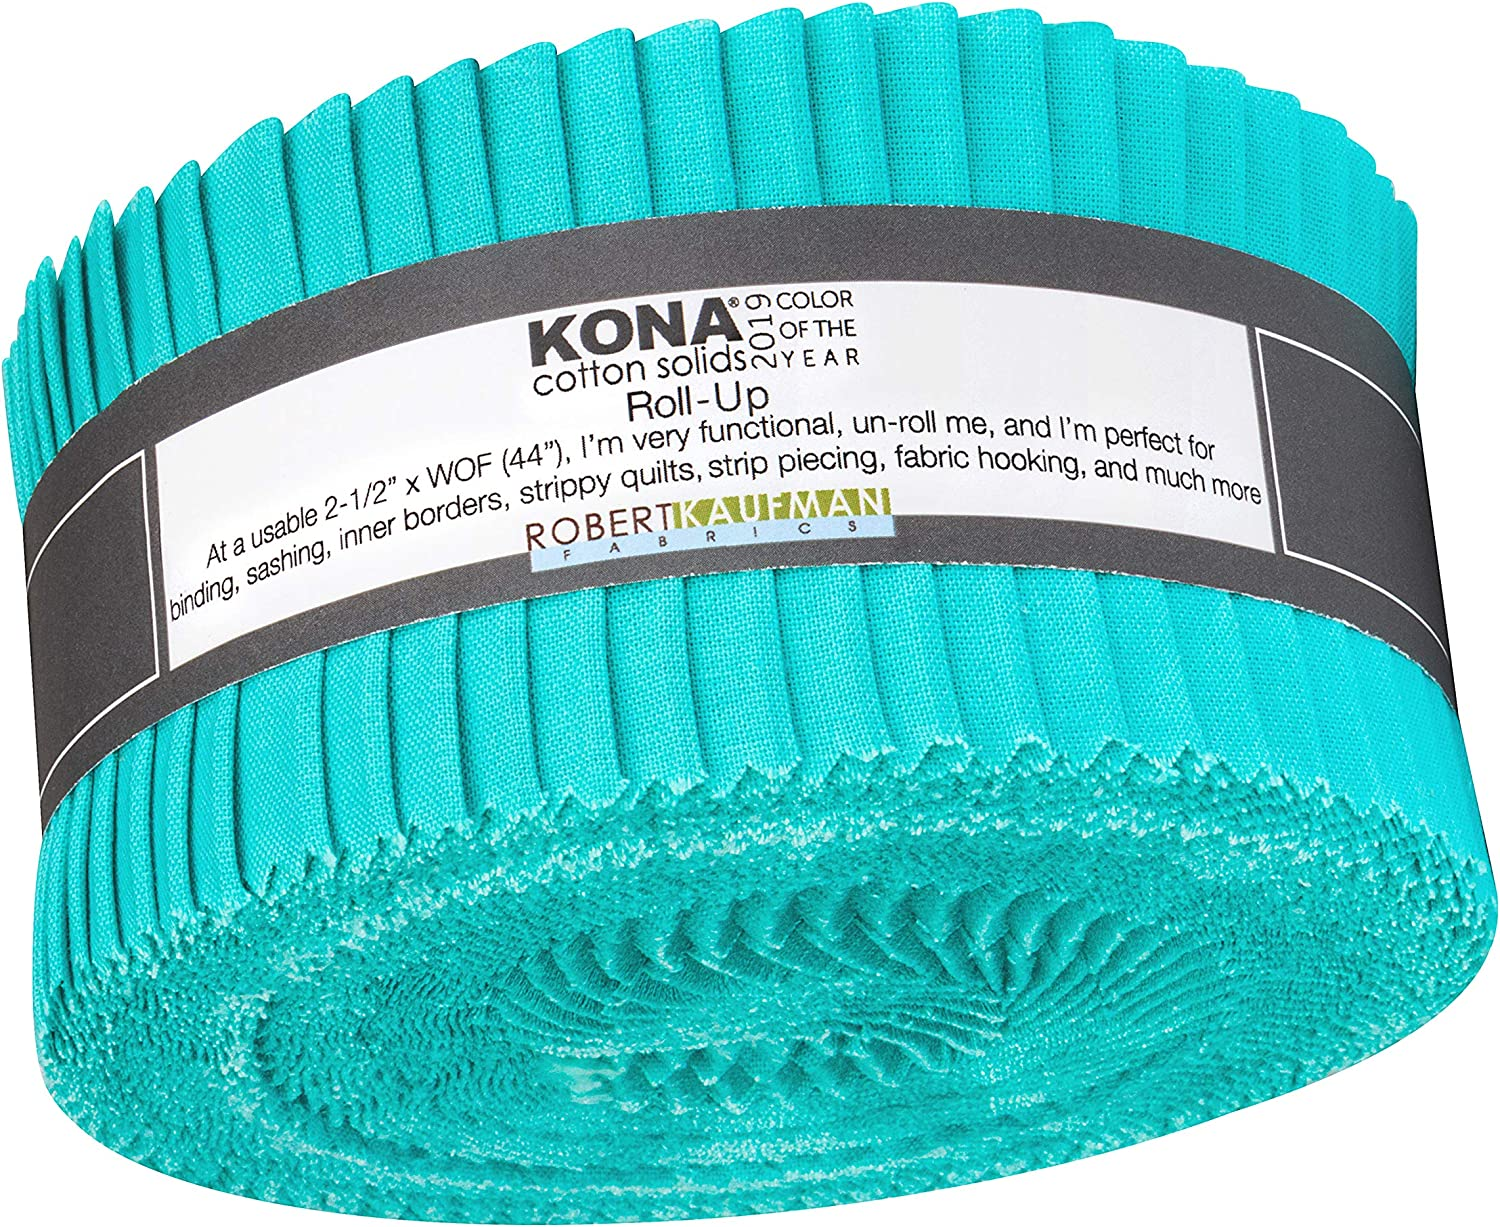 Kona Cotton Splash 2019 Color of the Year Quilt Fabric 2.5'' Roll Ups